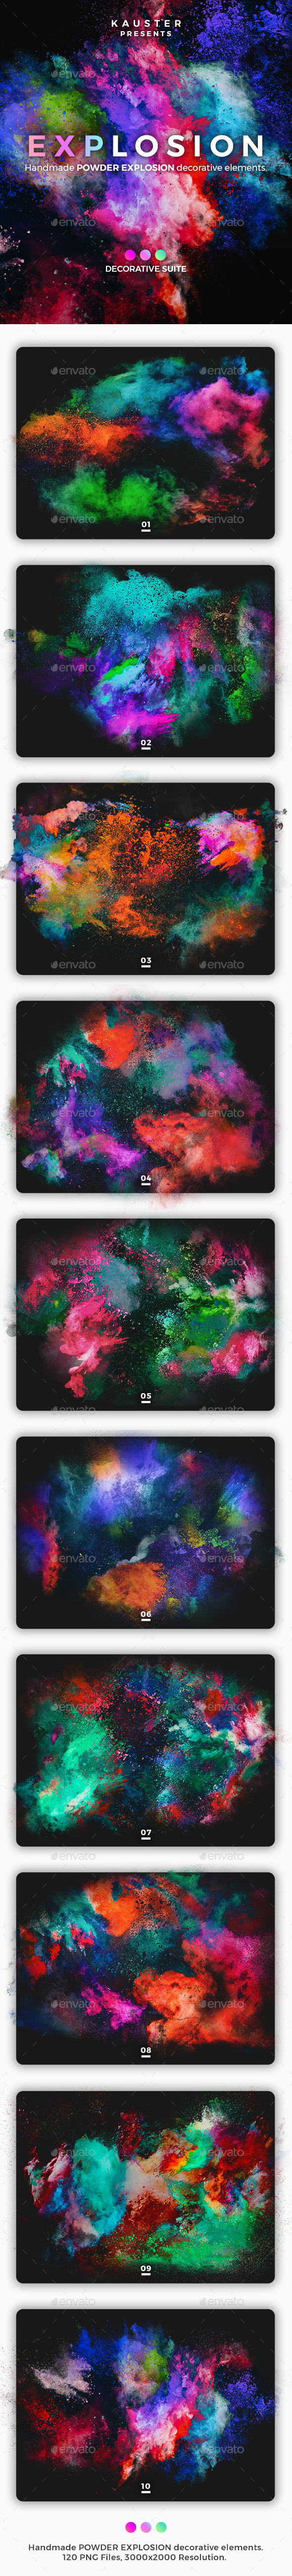 Powder Explosion Decorative Suite - Abstract Backgrounds